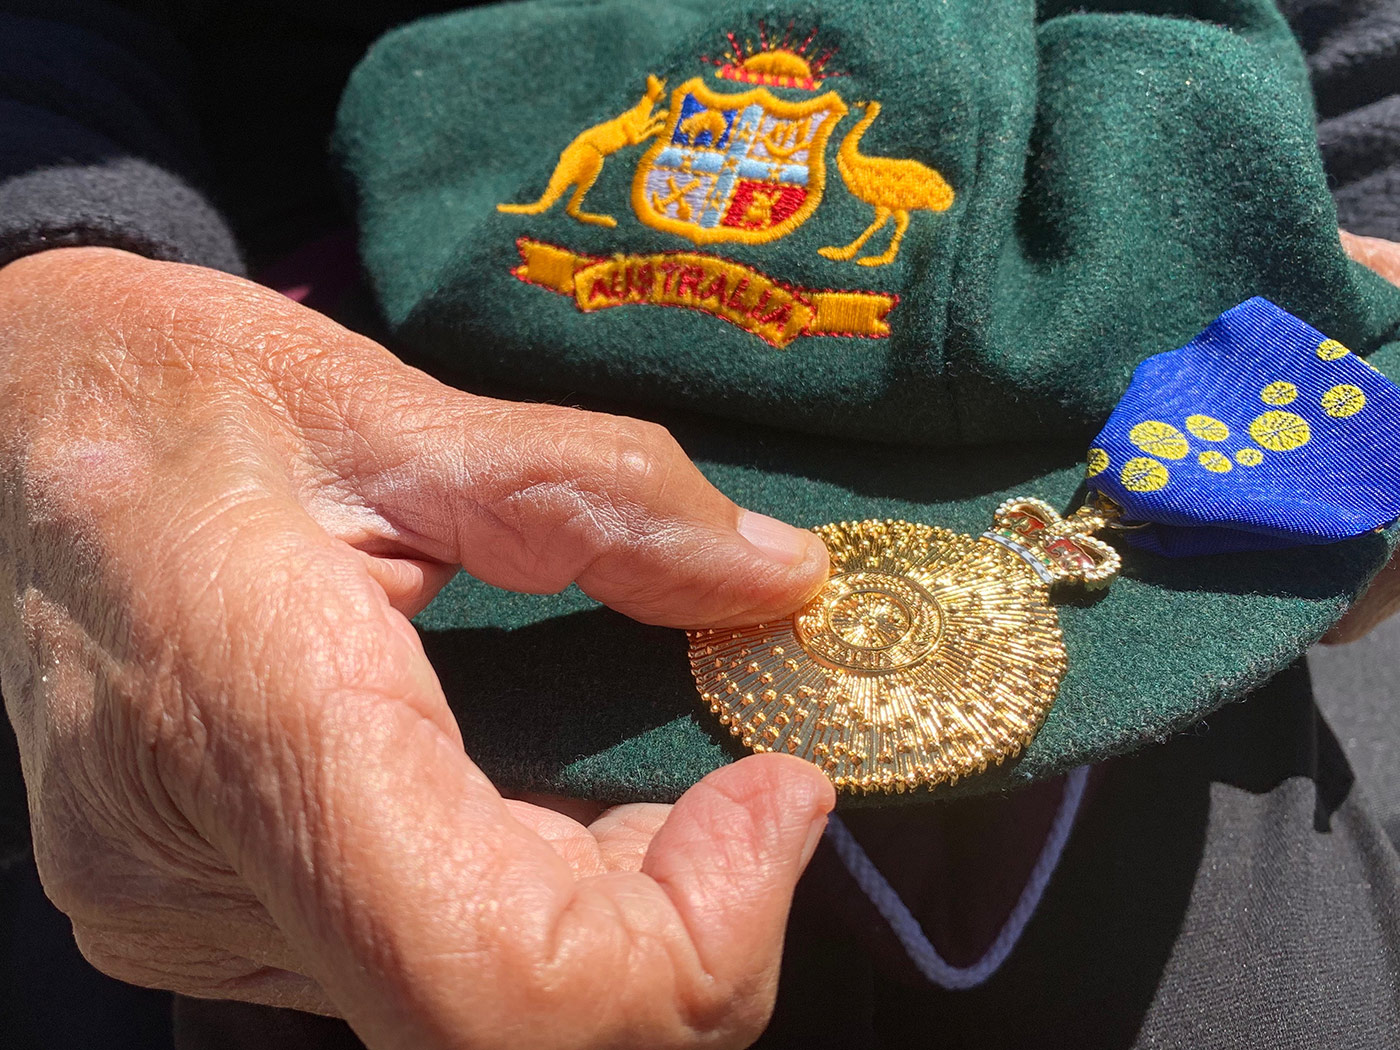 The goods: Thomas displays her baggy green and her Order of Australia medal